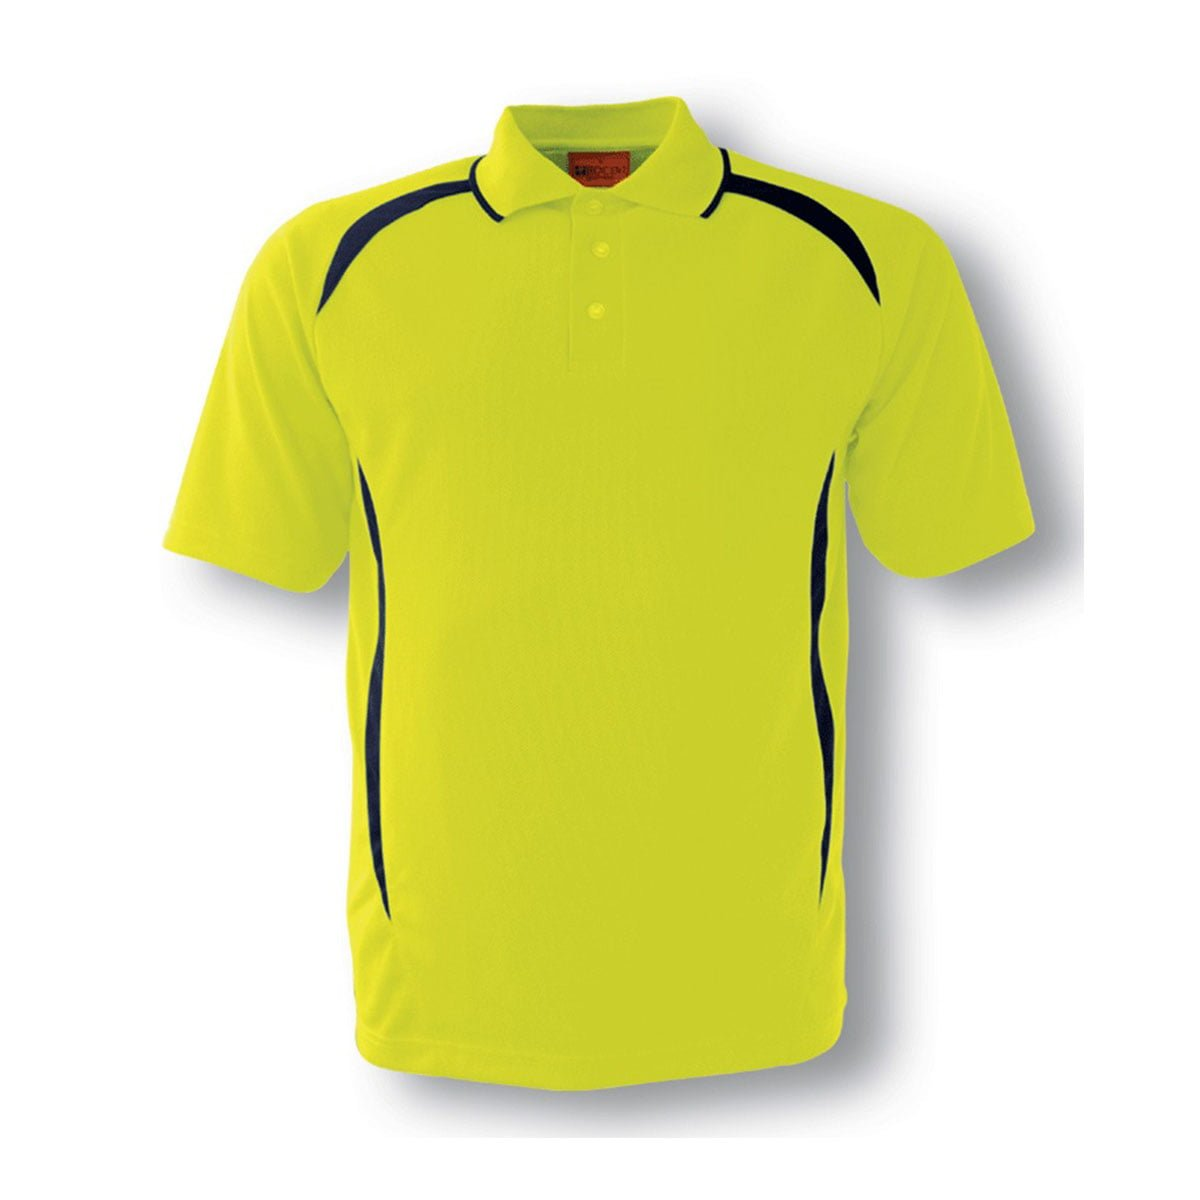 HI-VIS SAFETY STYLE POLO-Lime / Navy